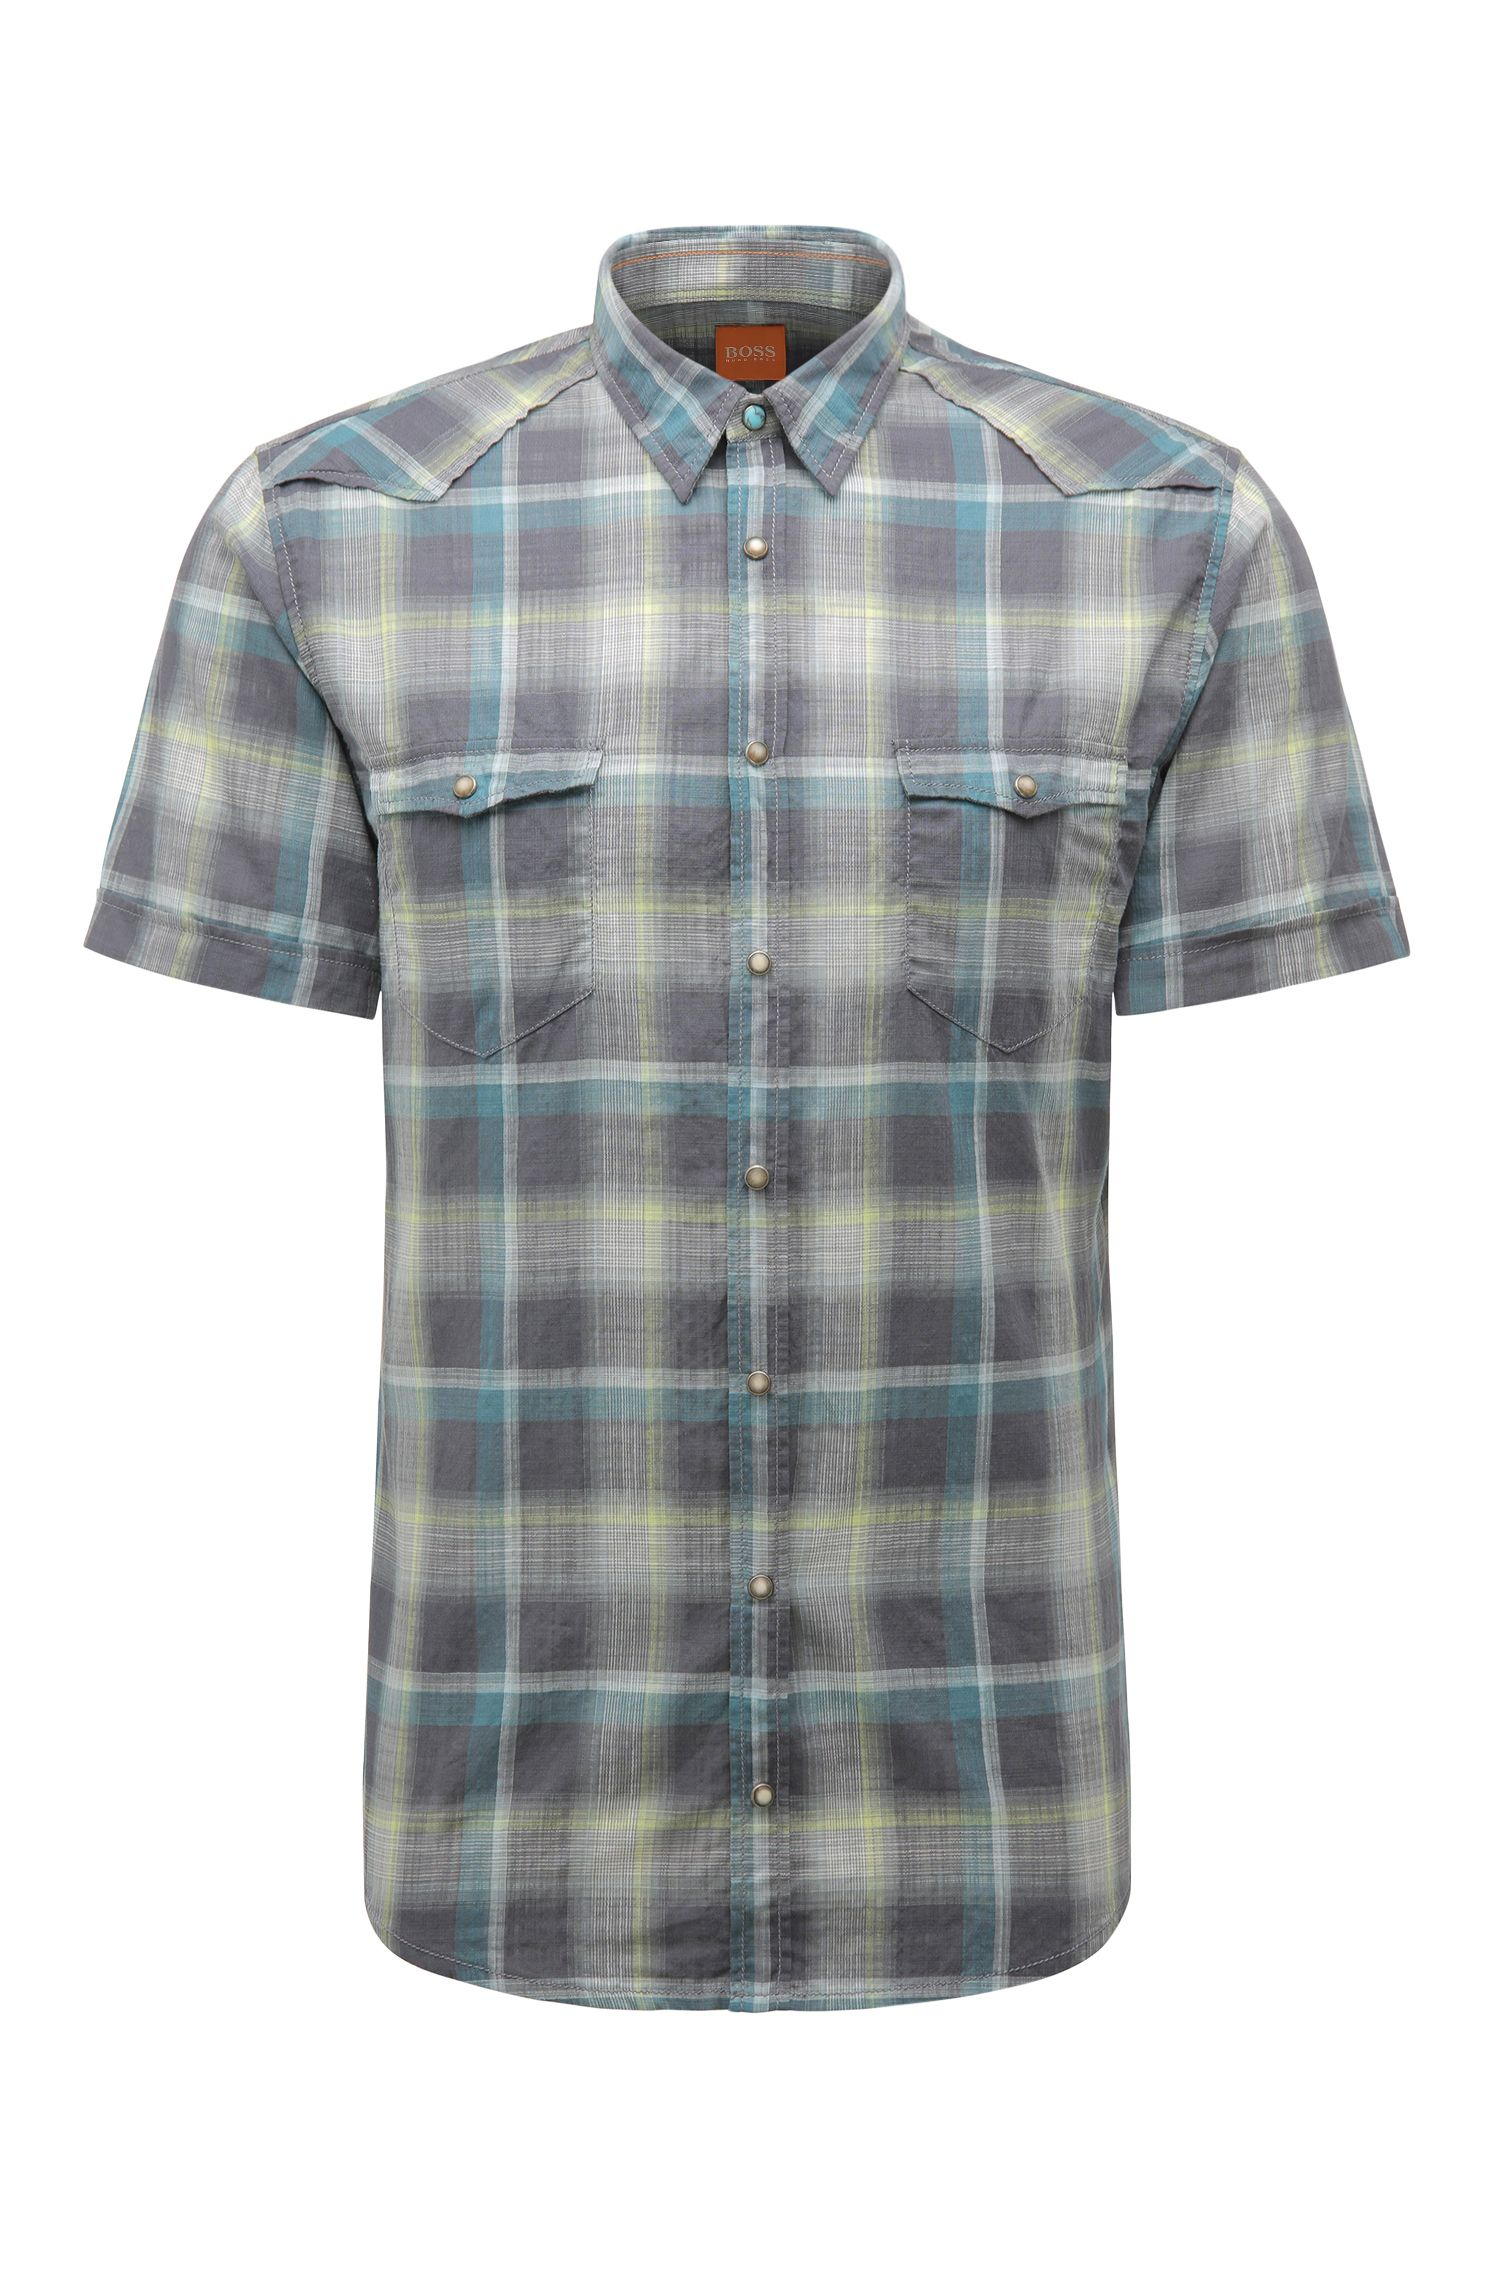 'Erodeo Short' | Slim Fit, Cotton Plaid Shirt